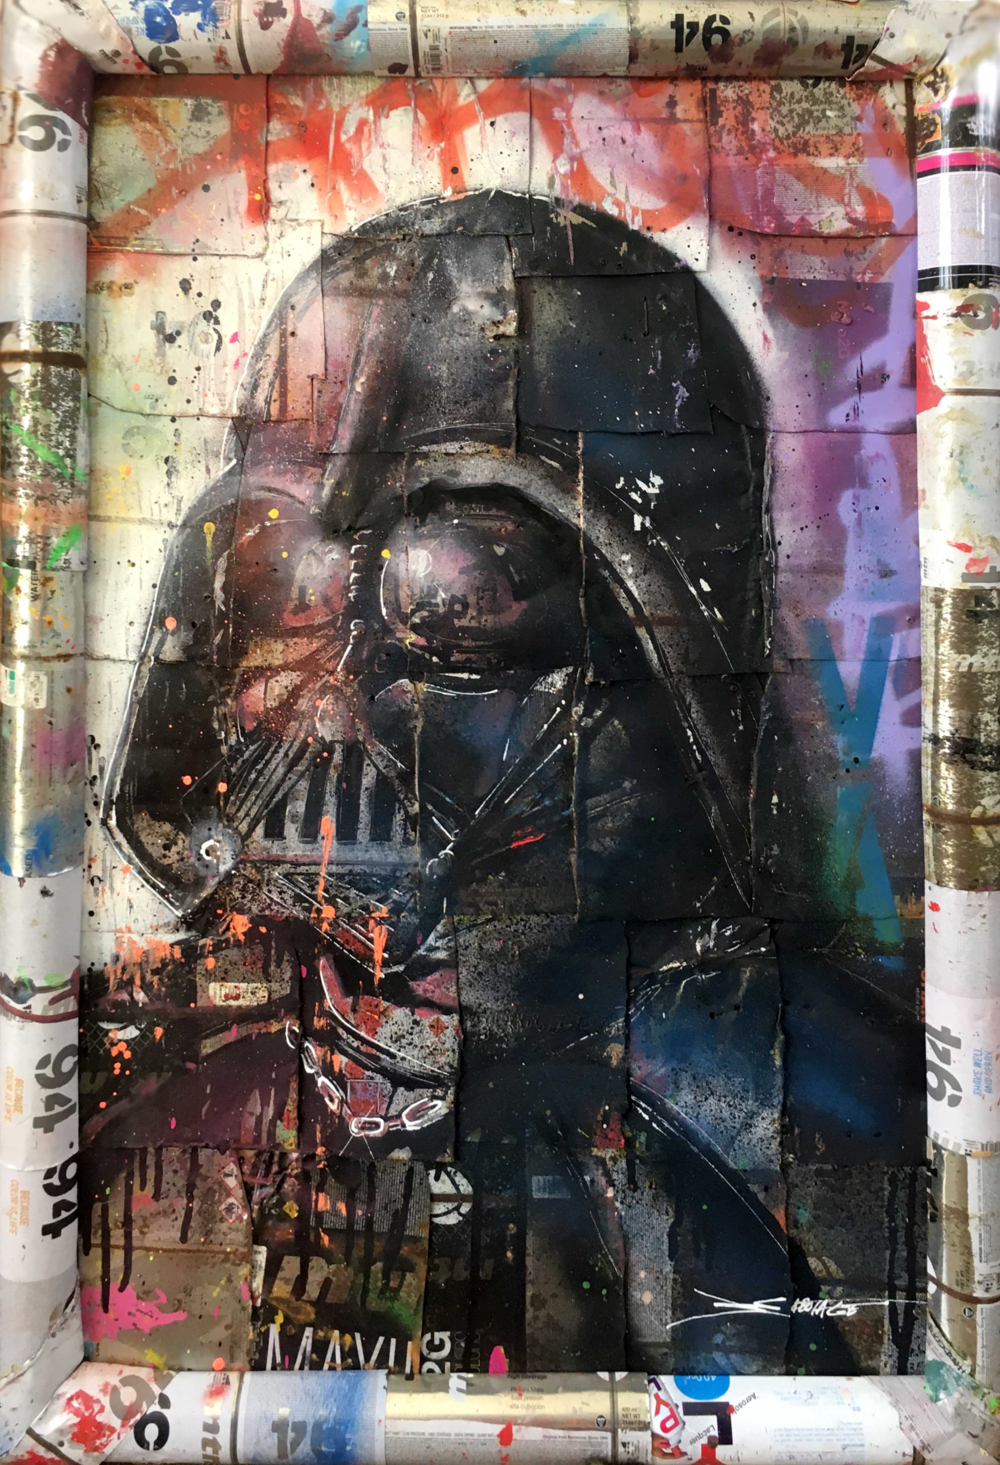 """Darth"" Stencil and Hand Spray Paint on Deconstructed Can Background 60 x 90 cm 2018"